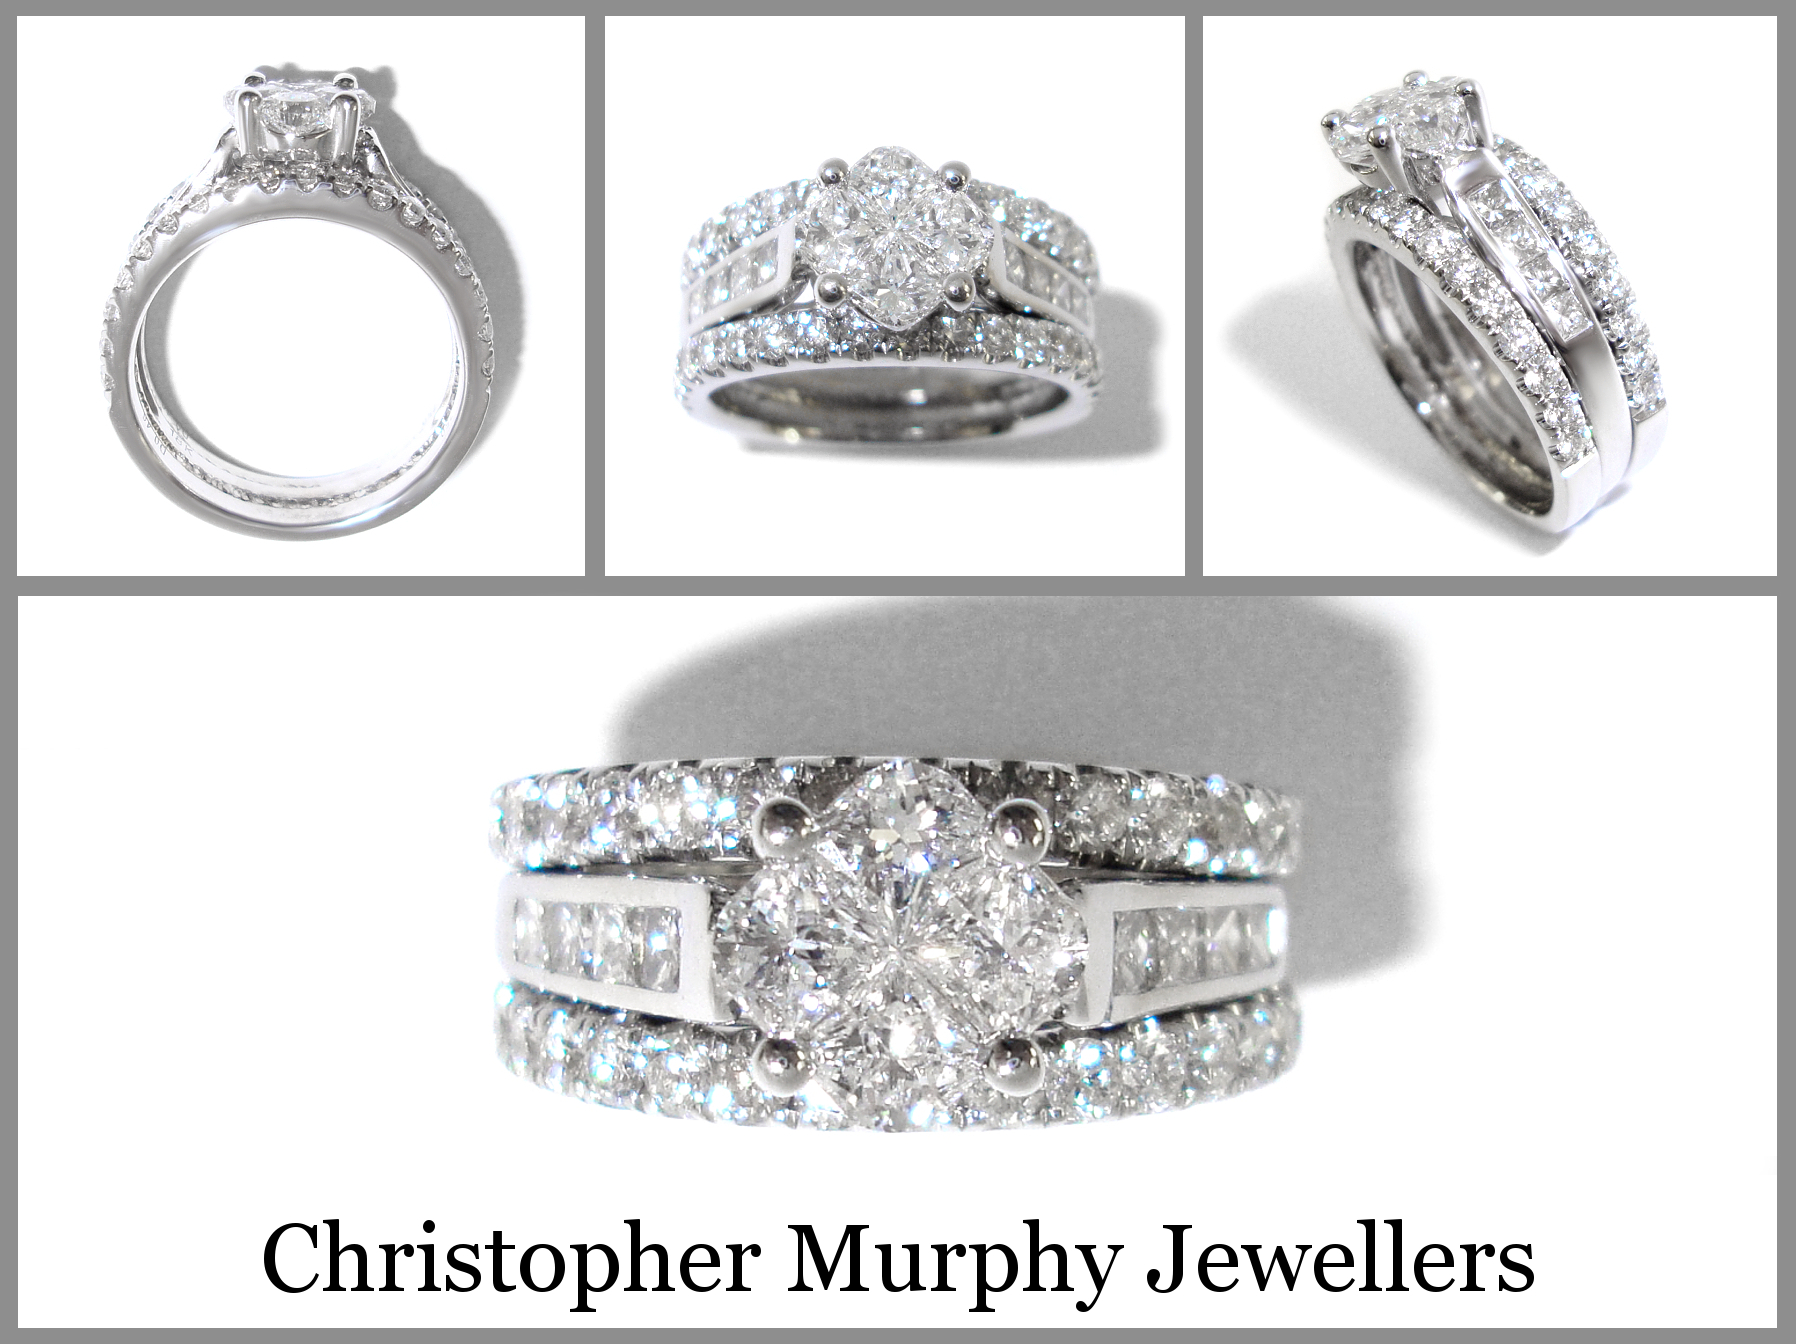 double wedding rings christopher murphy jewellers With double wedding rings